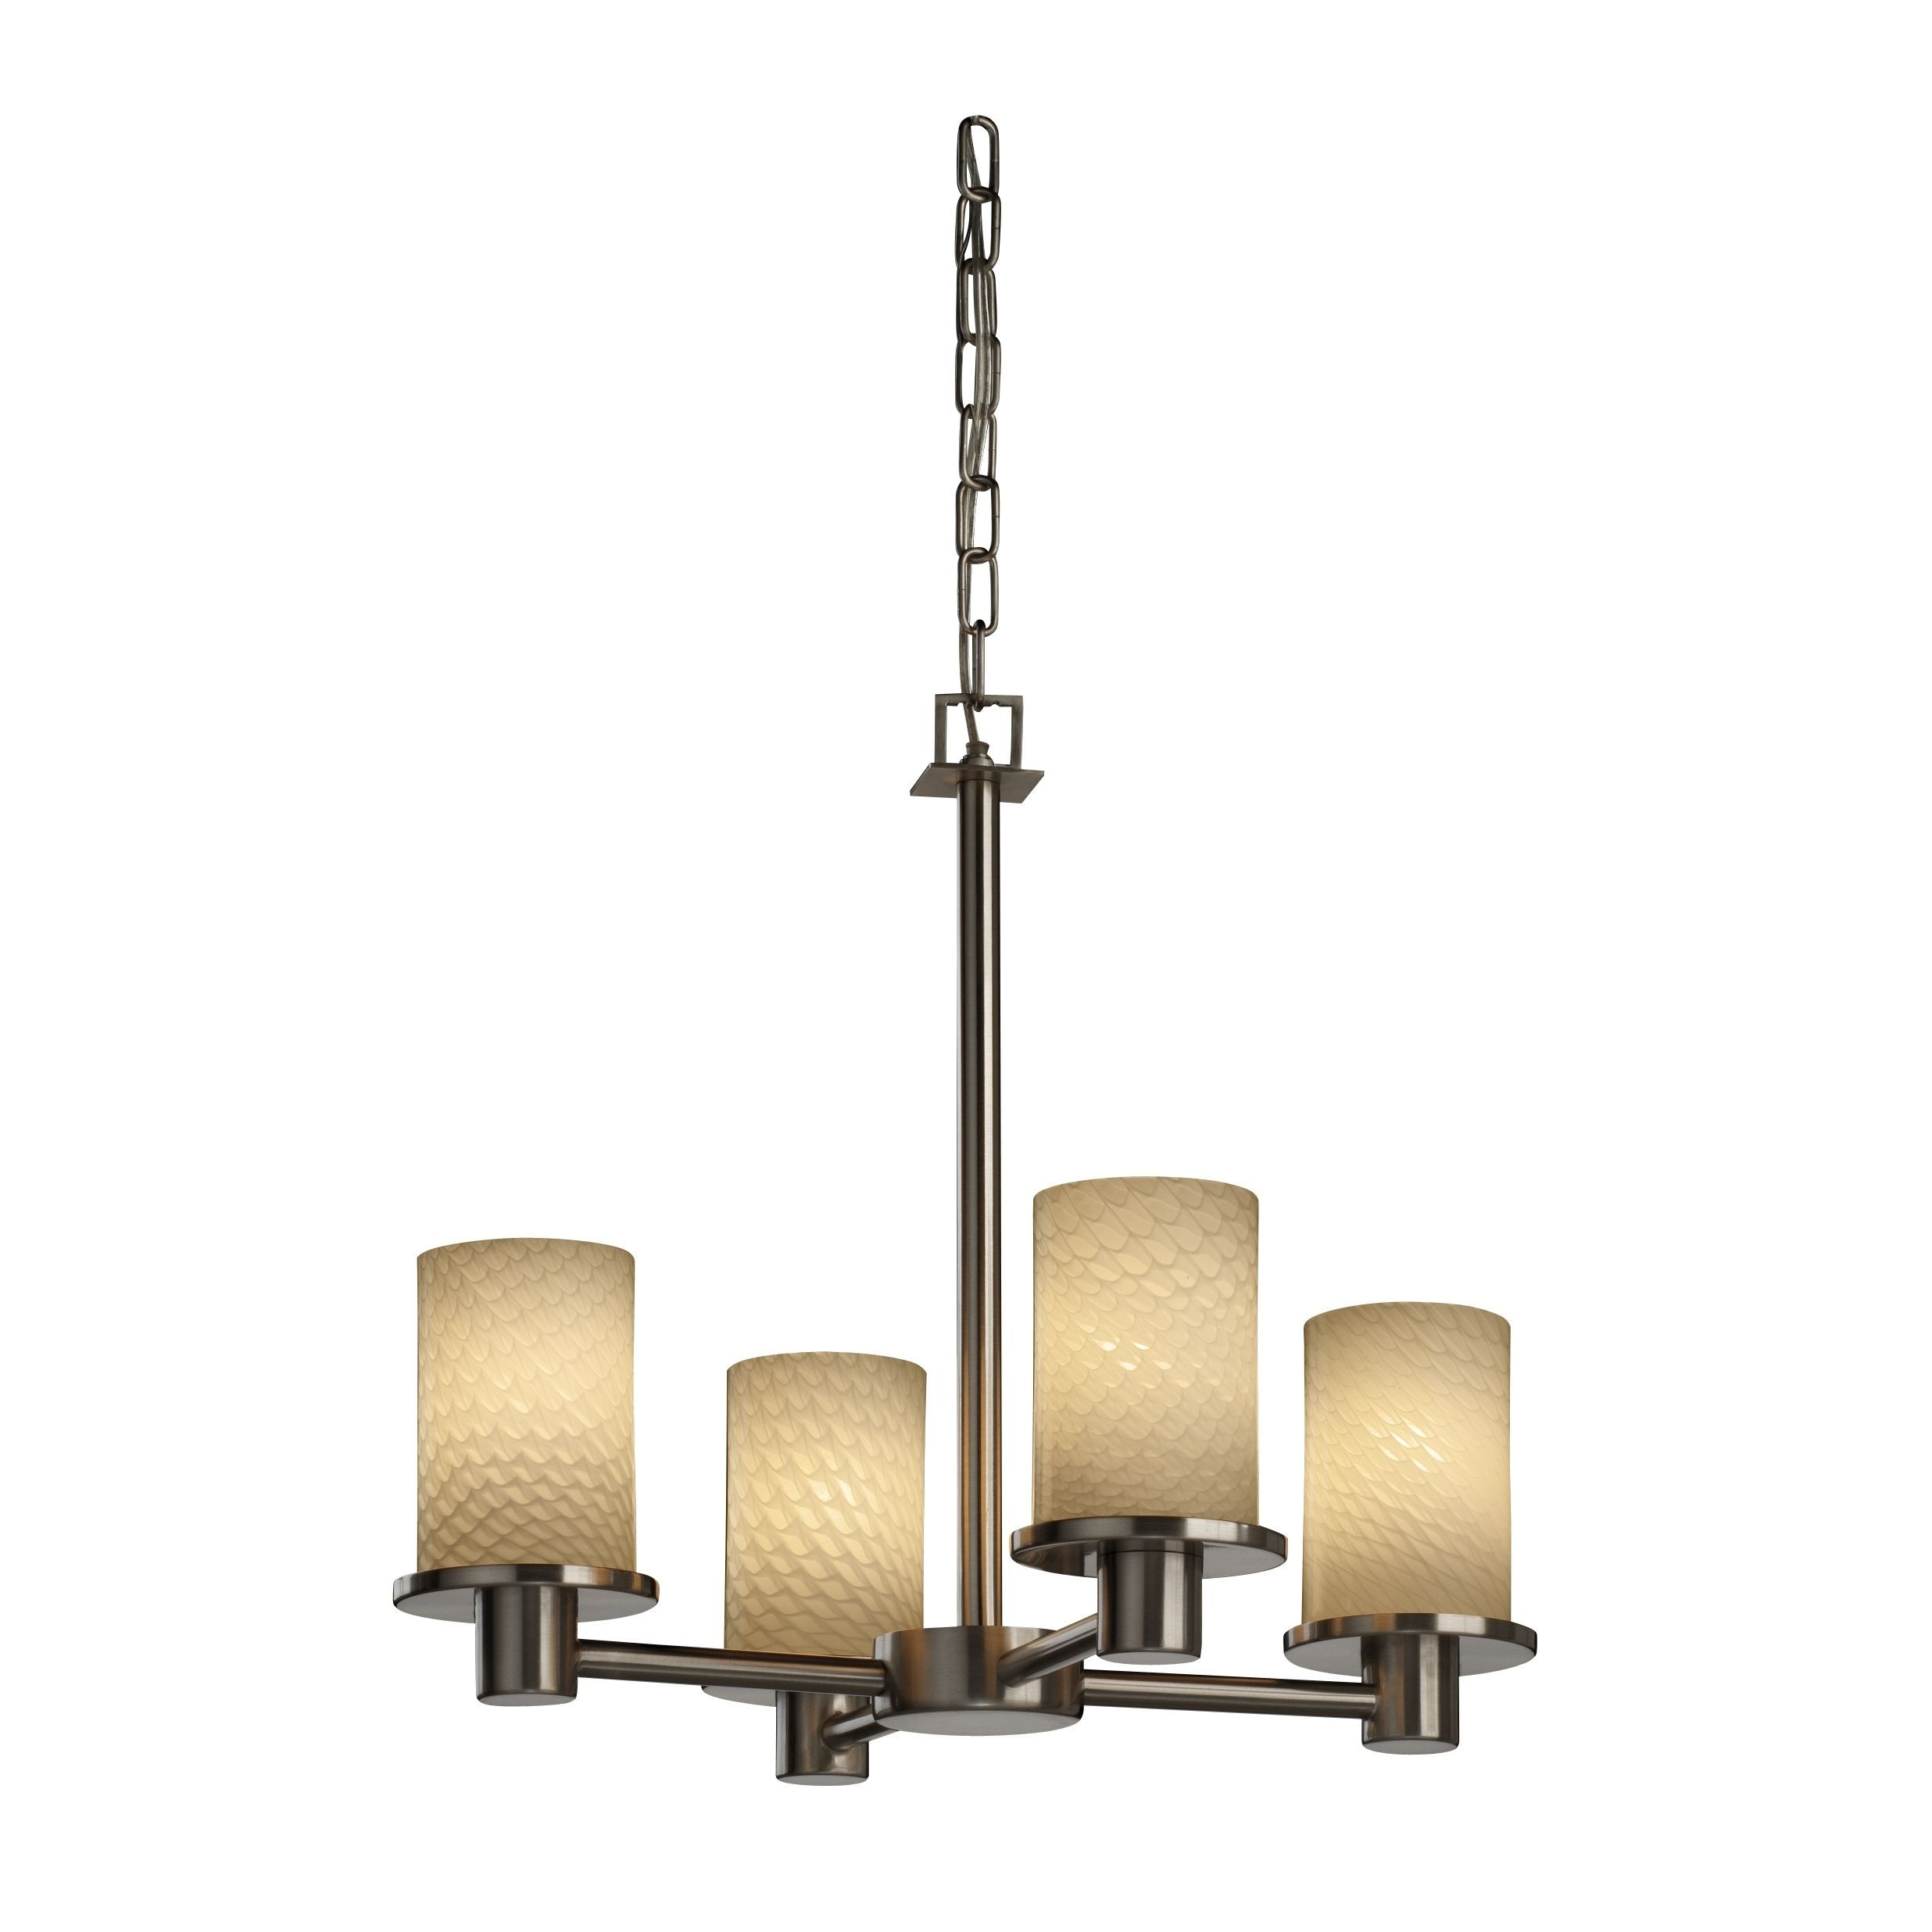 Justice Design Group Fusion 4-light Nickel Rondo Chandelier